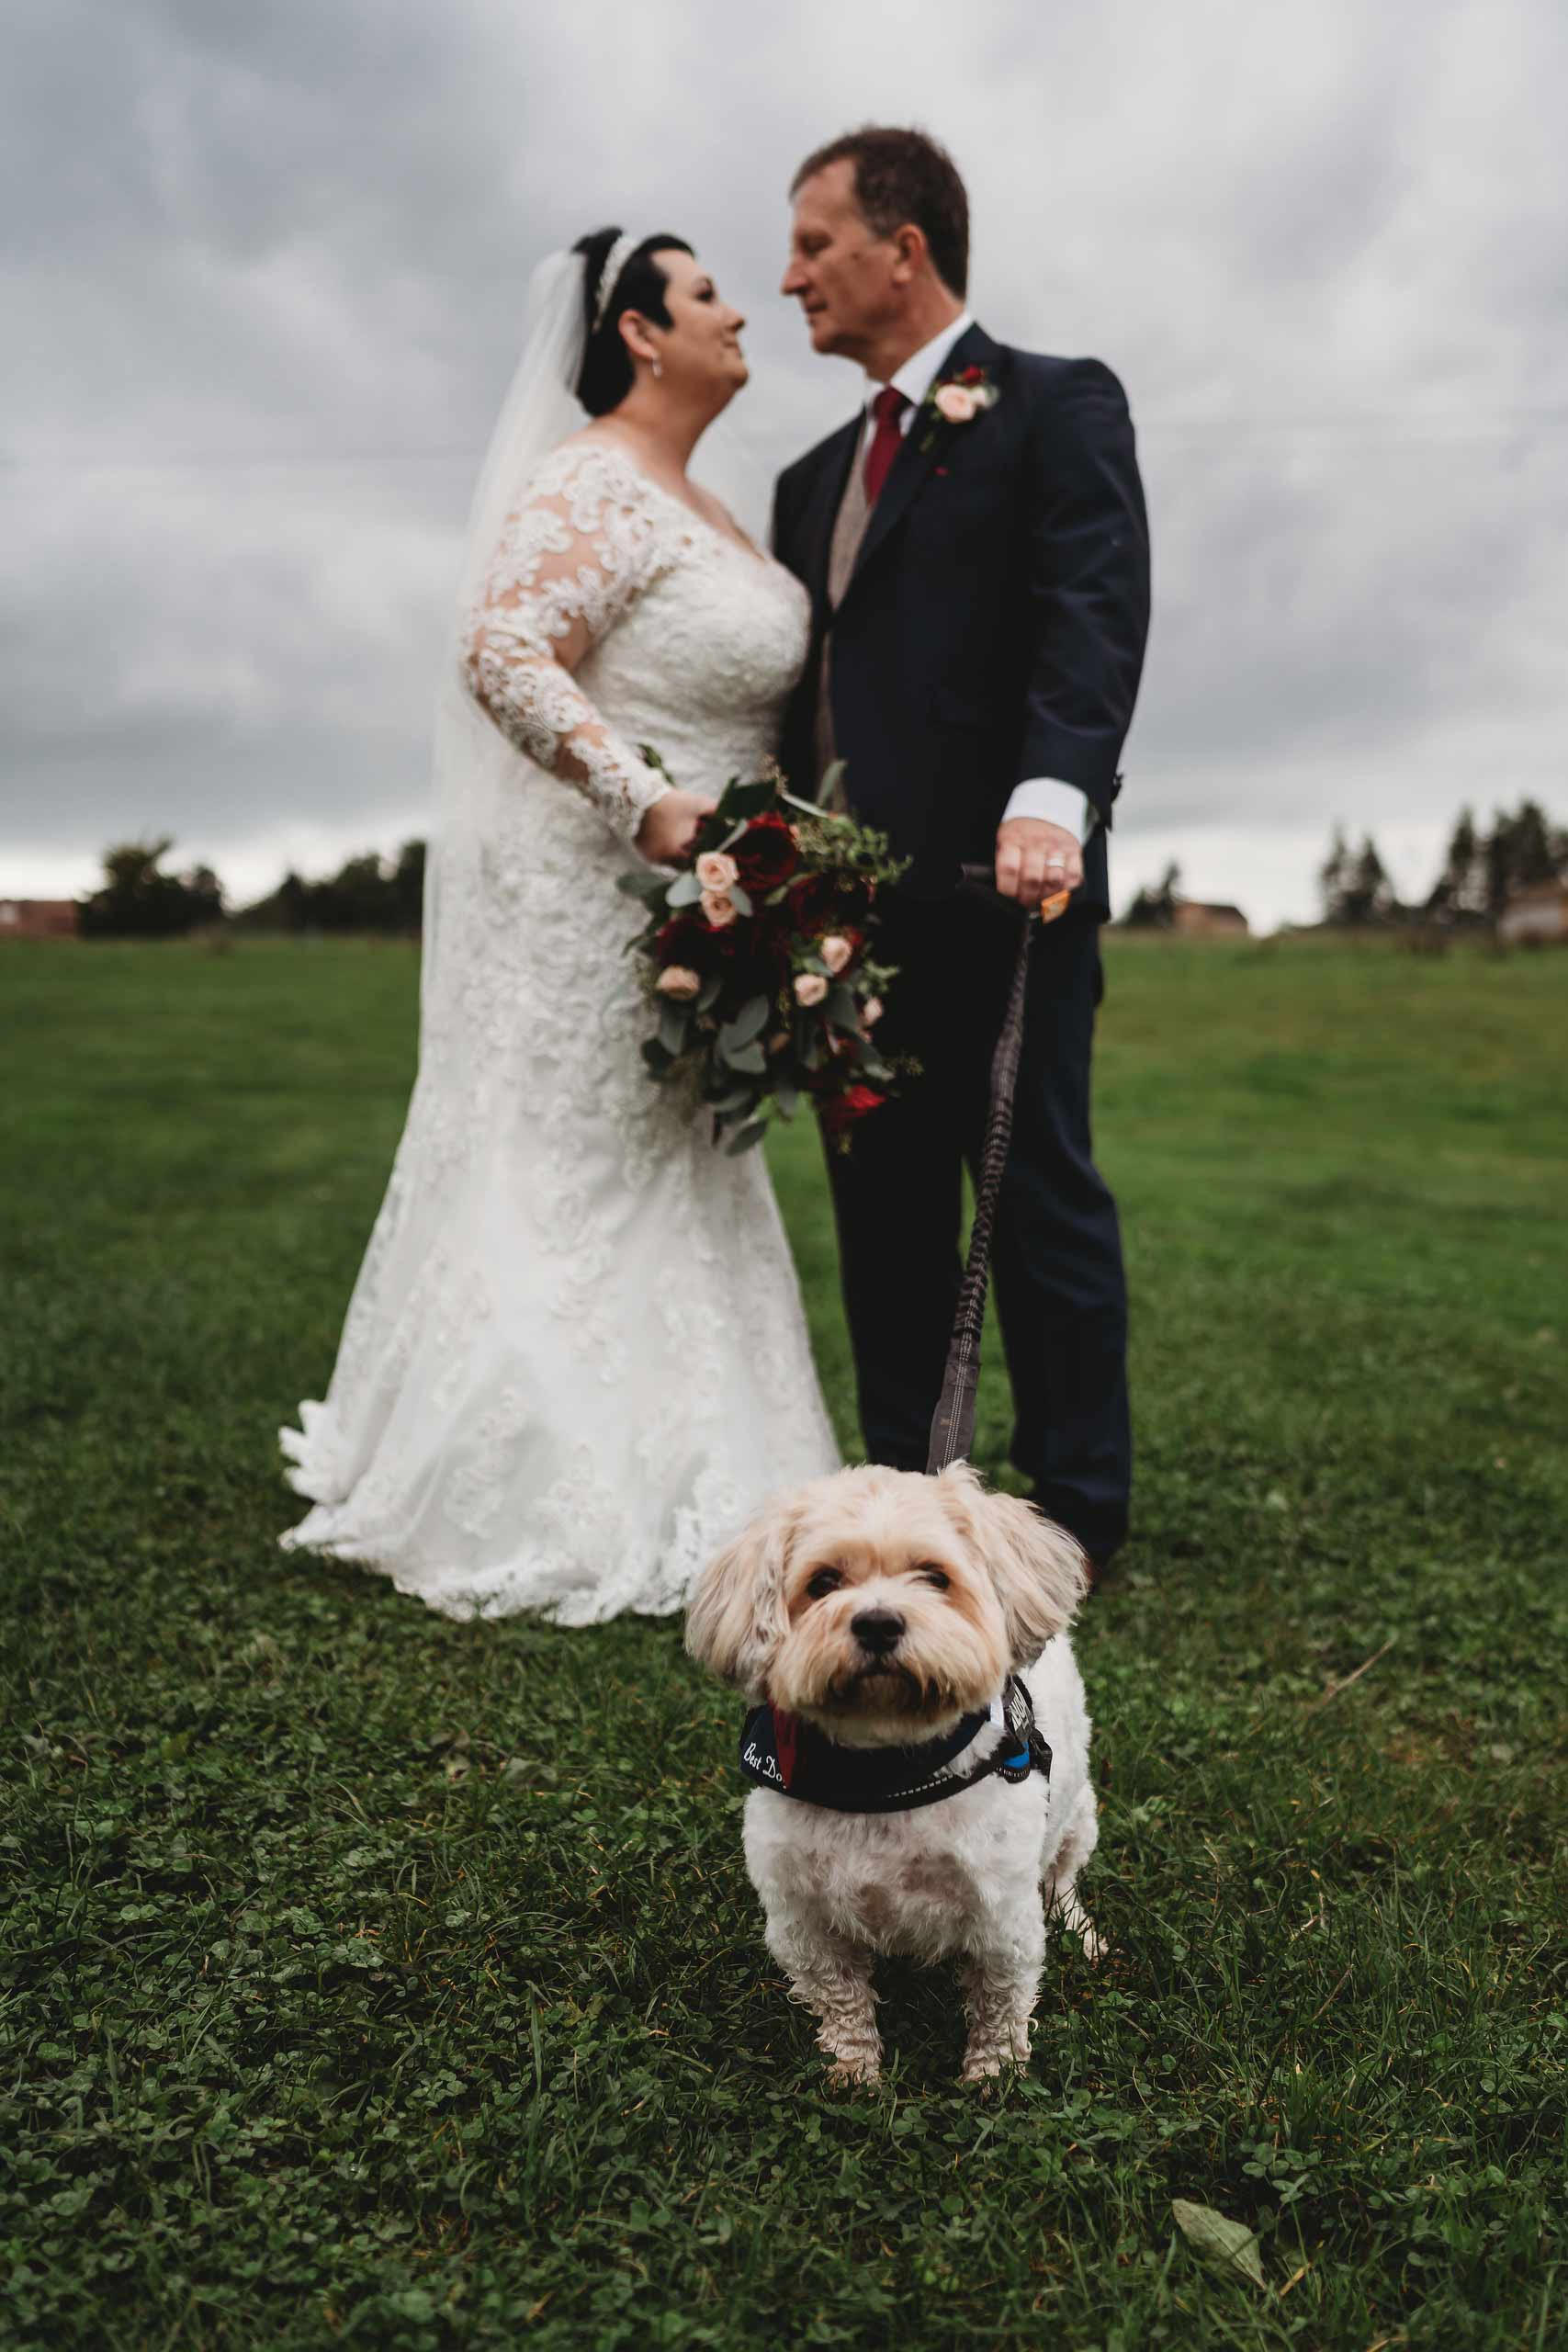 Bride, groom and their dog surronded by the beauty of the outdoors